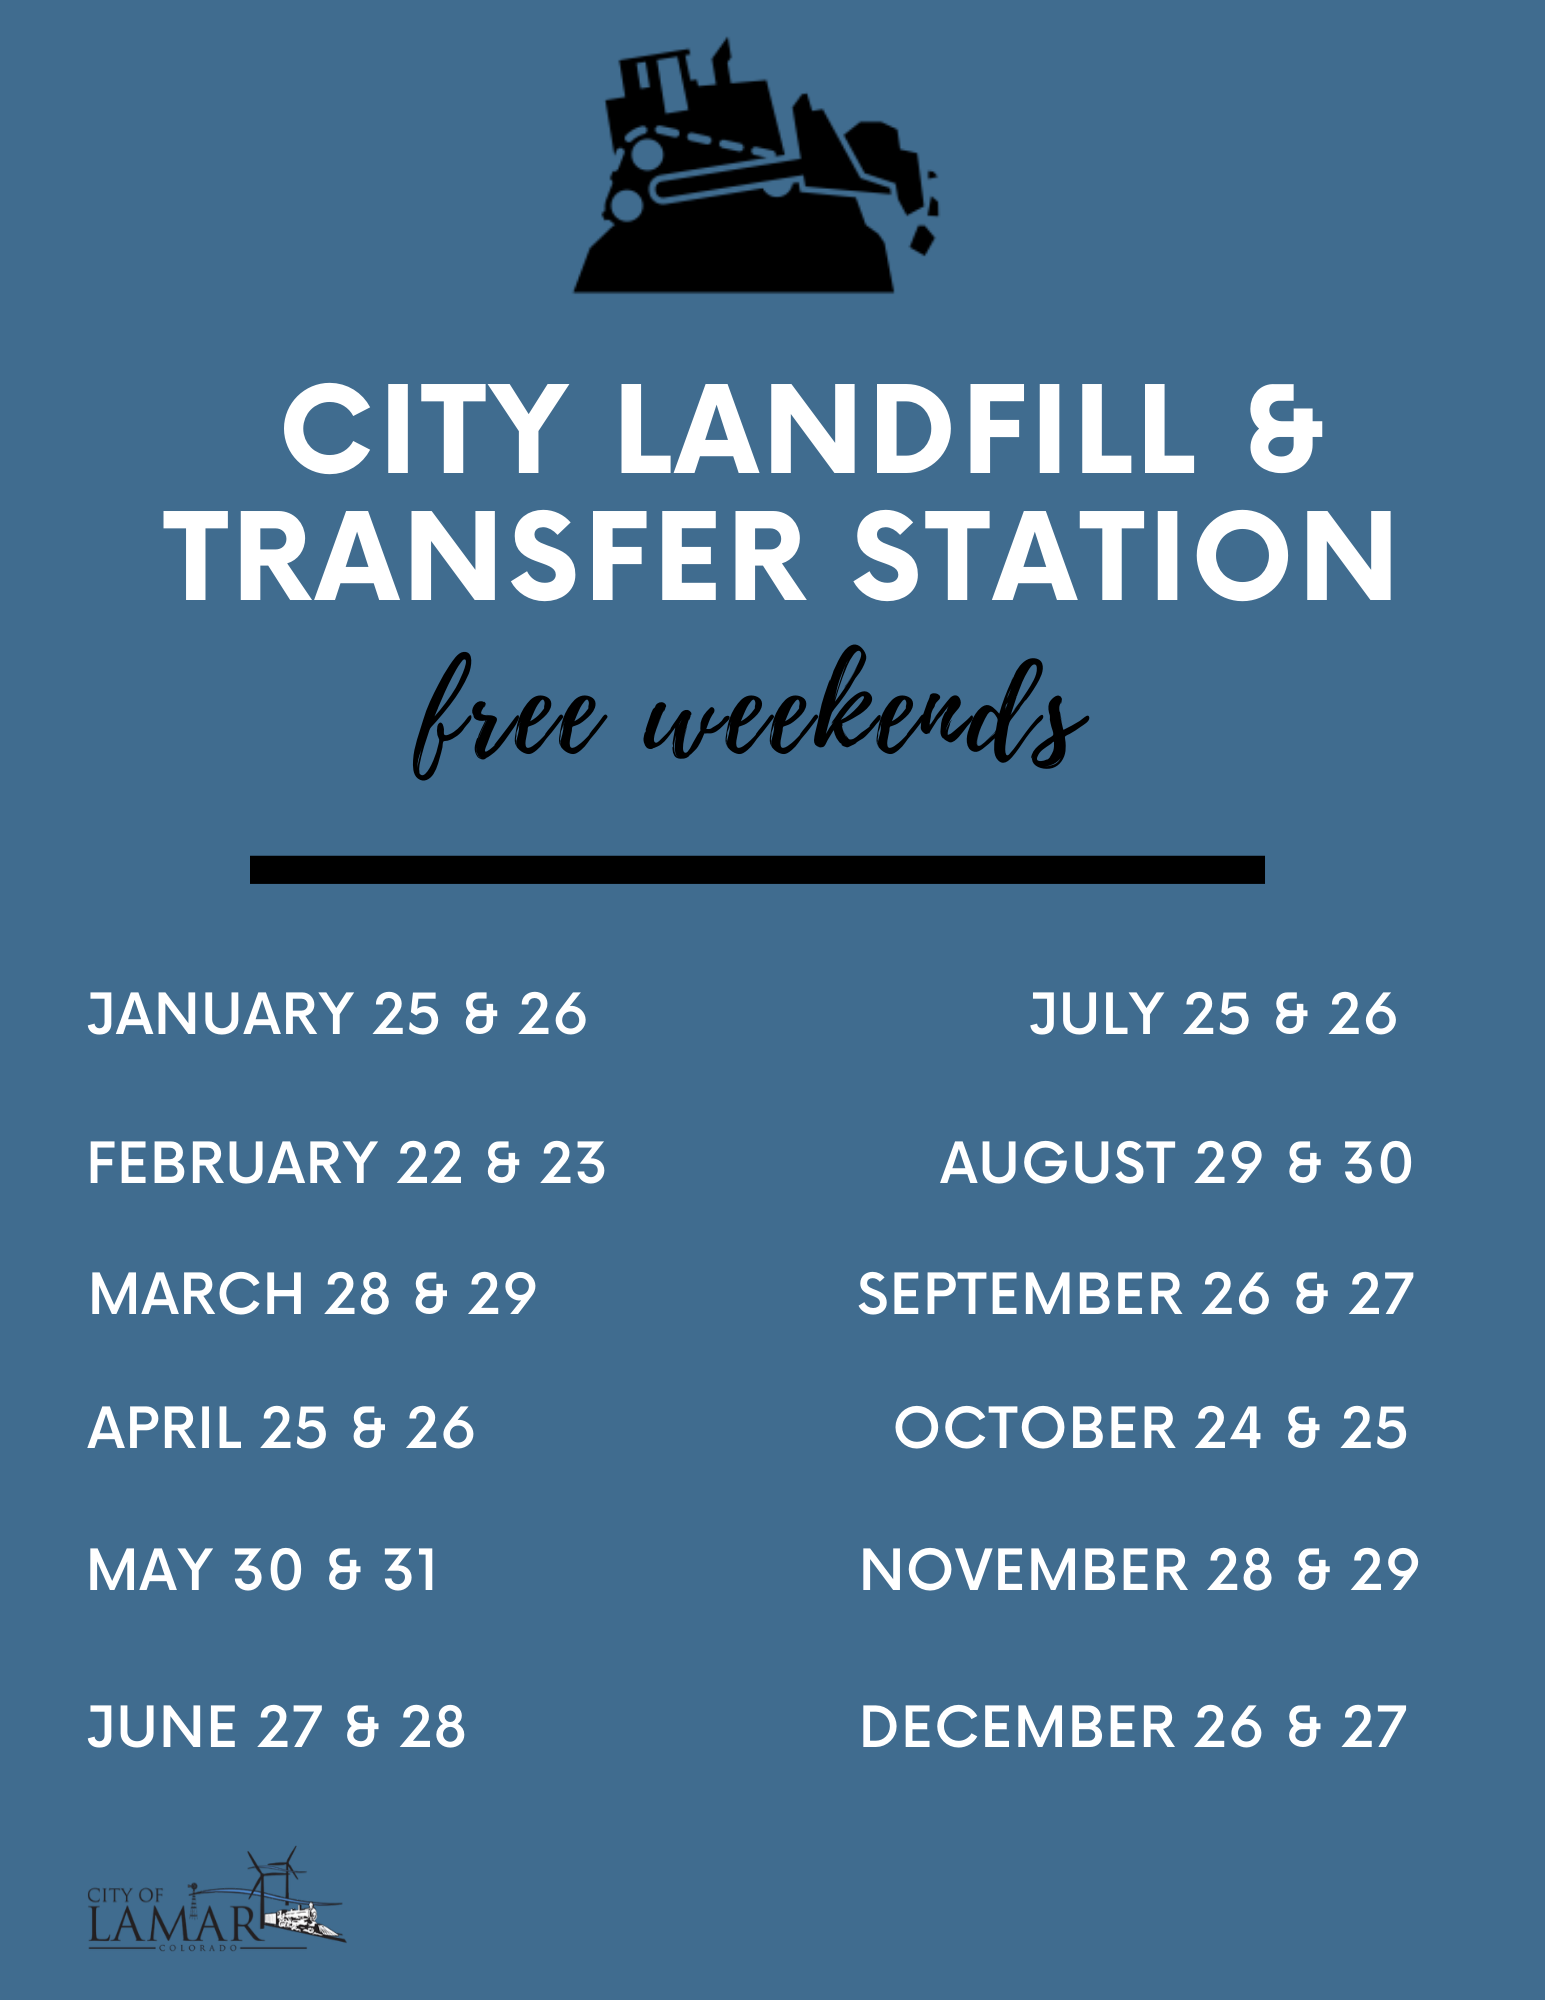 Free Weekend Hours at the Landfill & Transfer Station ...